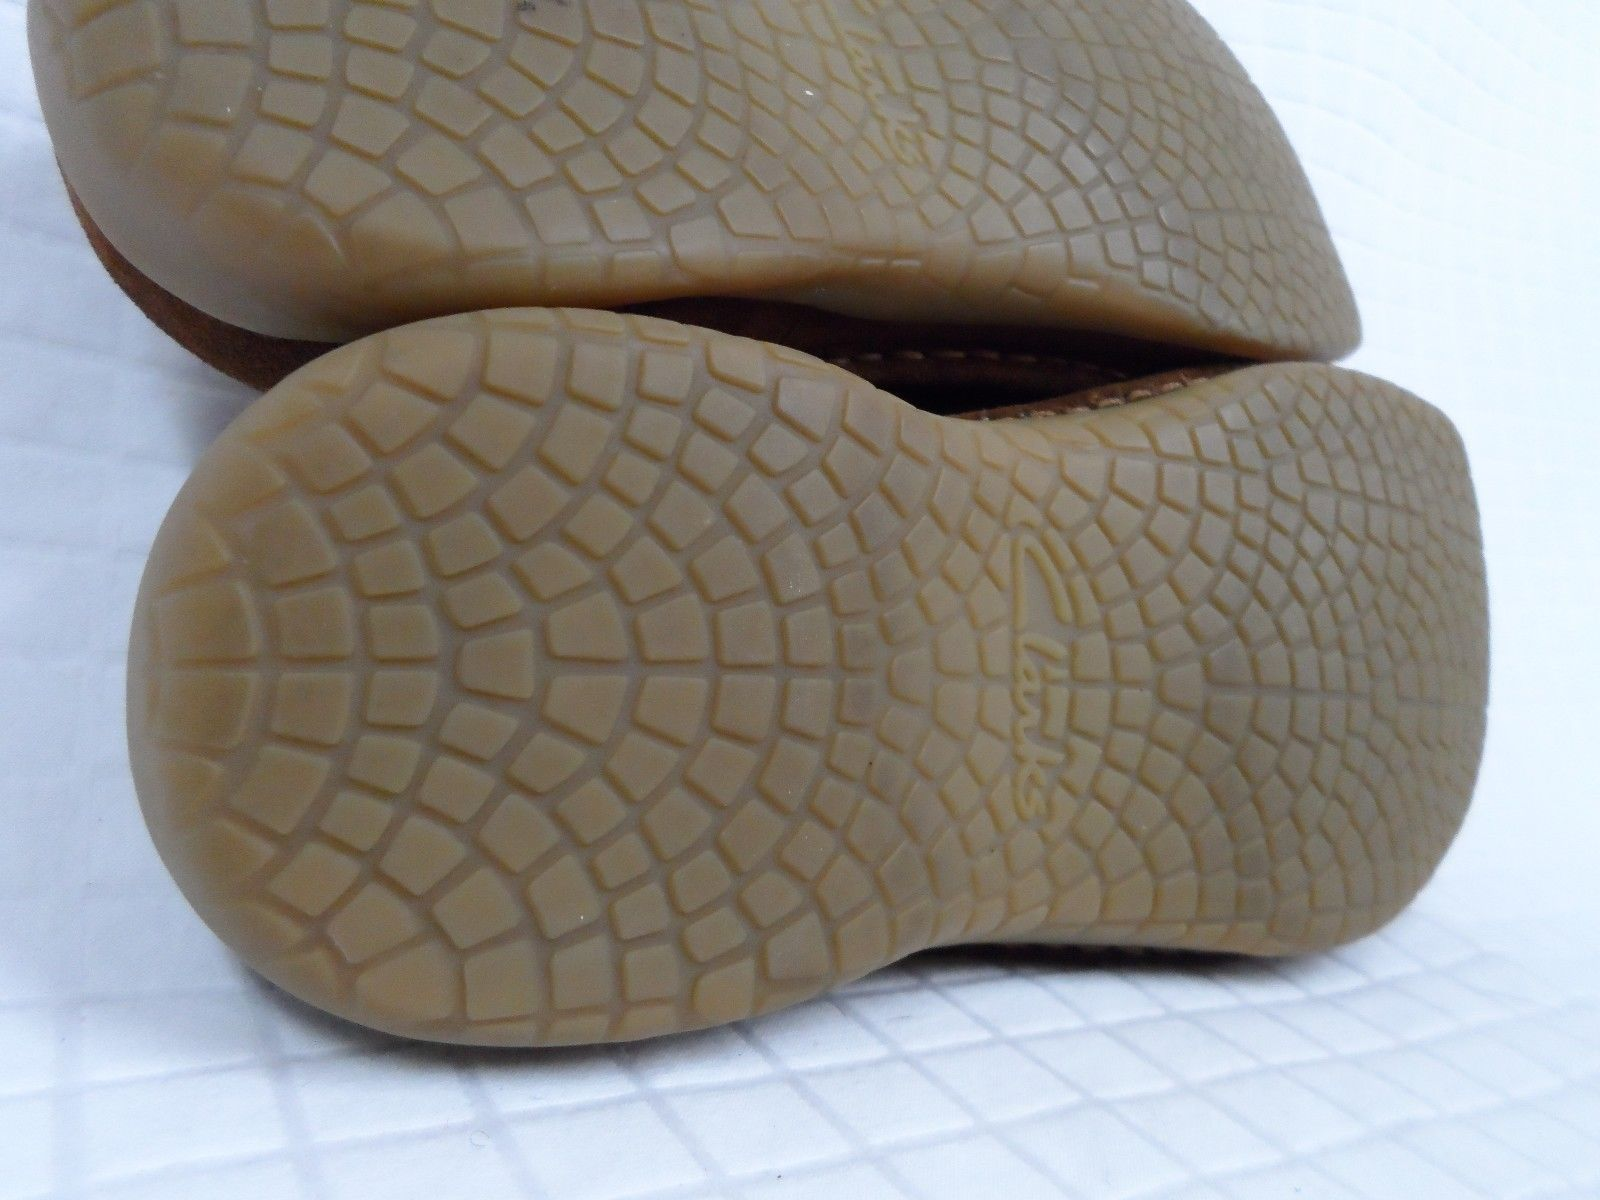 VGUC Women's CLARKS Slip On Brown Suede Leather 7.5 Mules